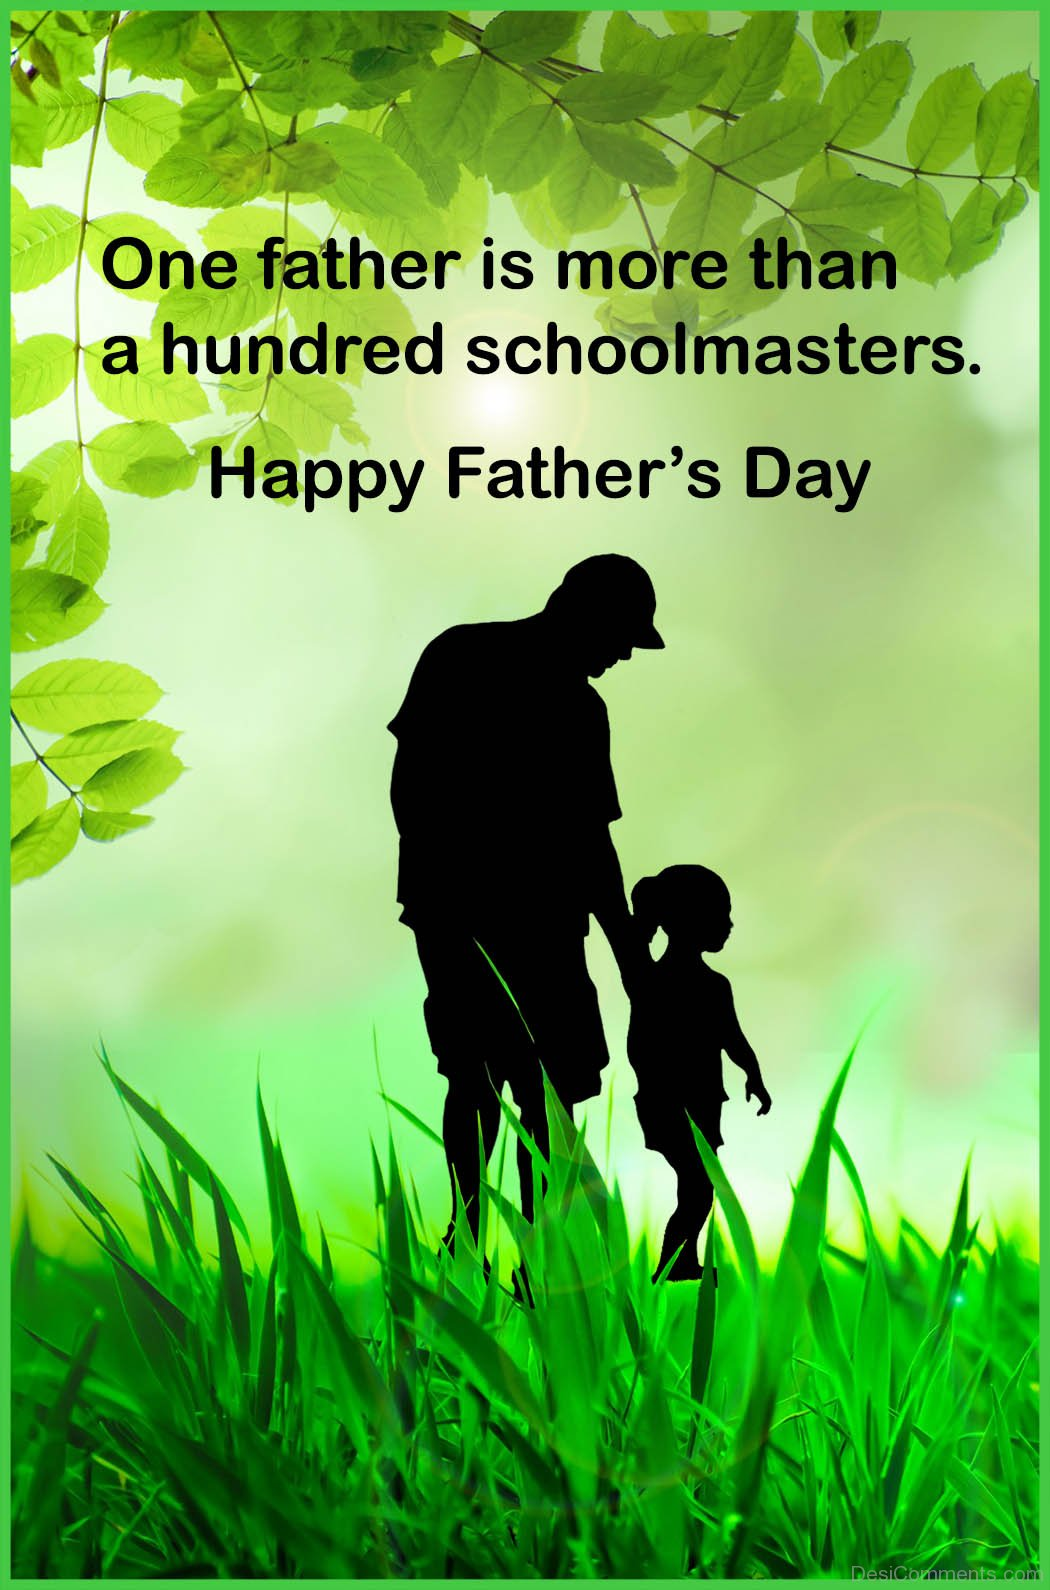 Father's Day Pictures Images Graphics Page 2